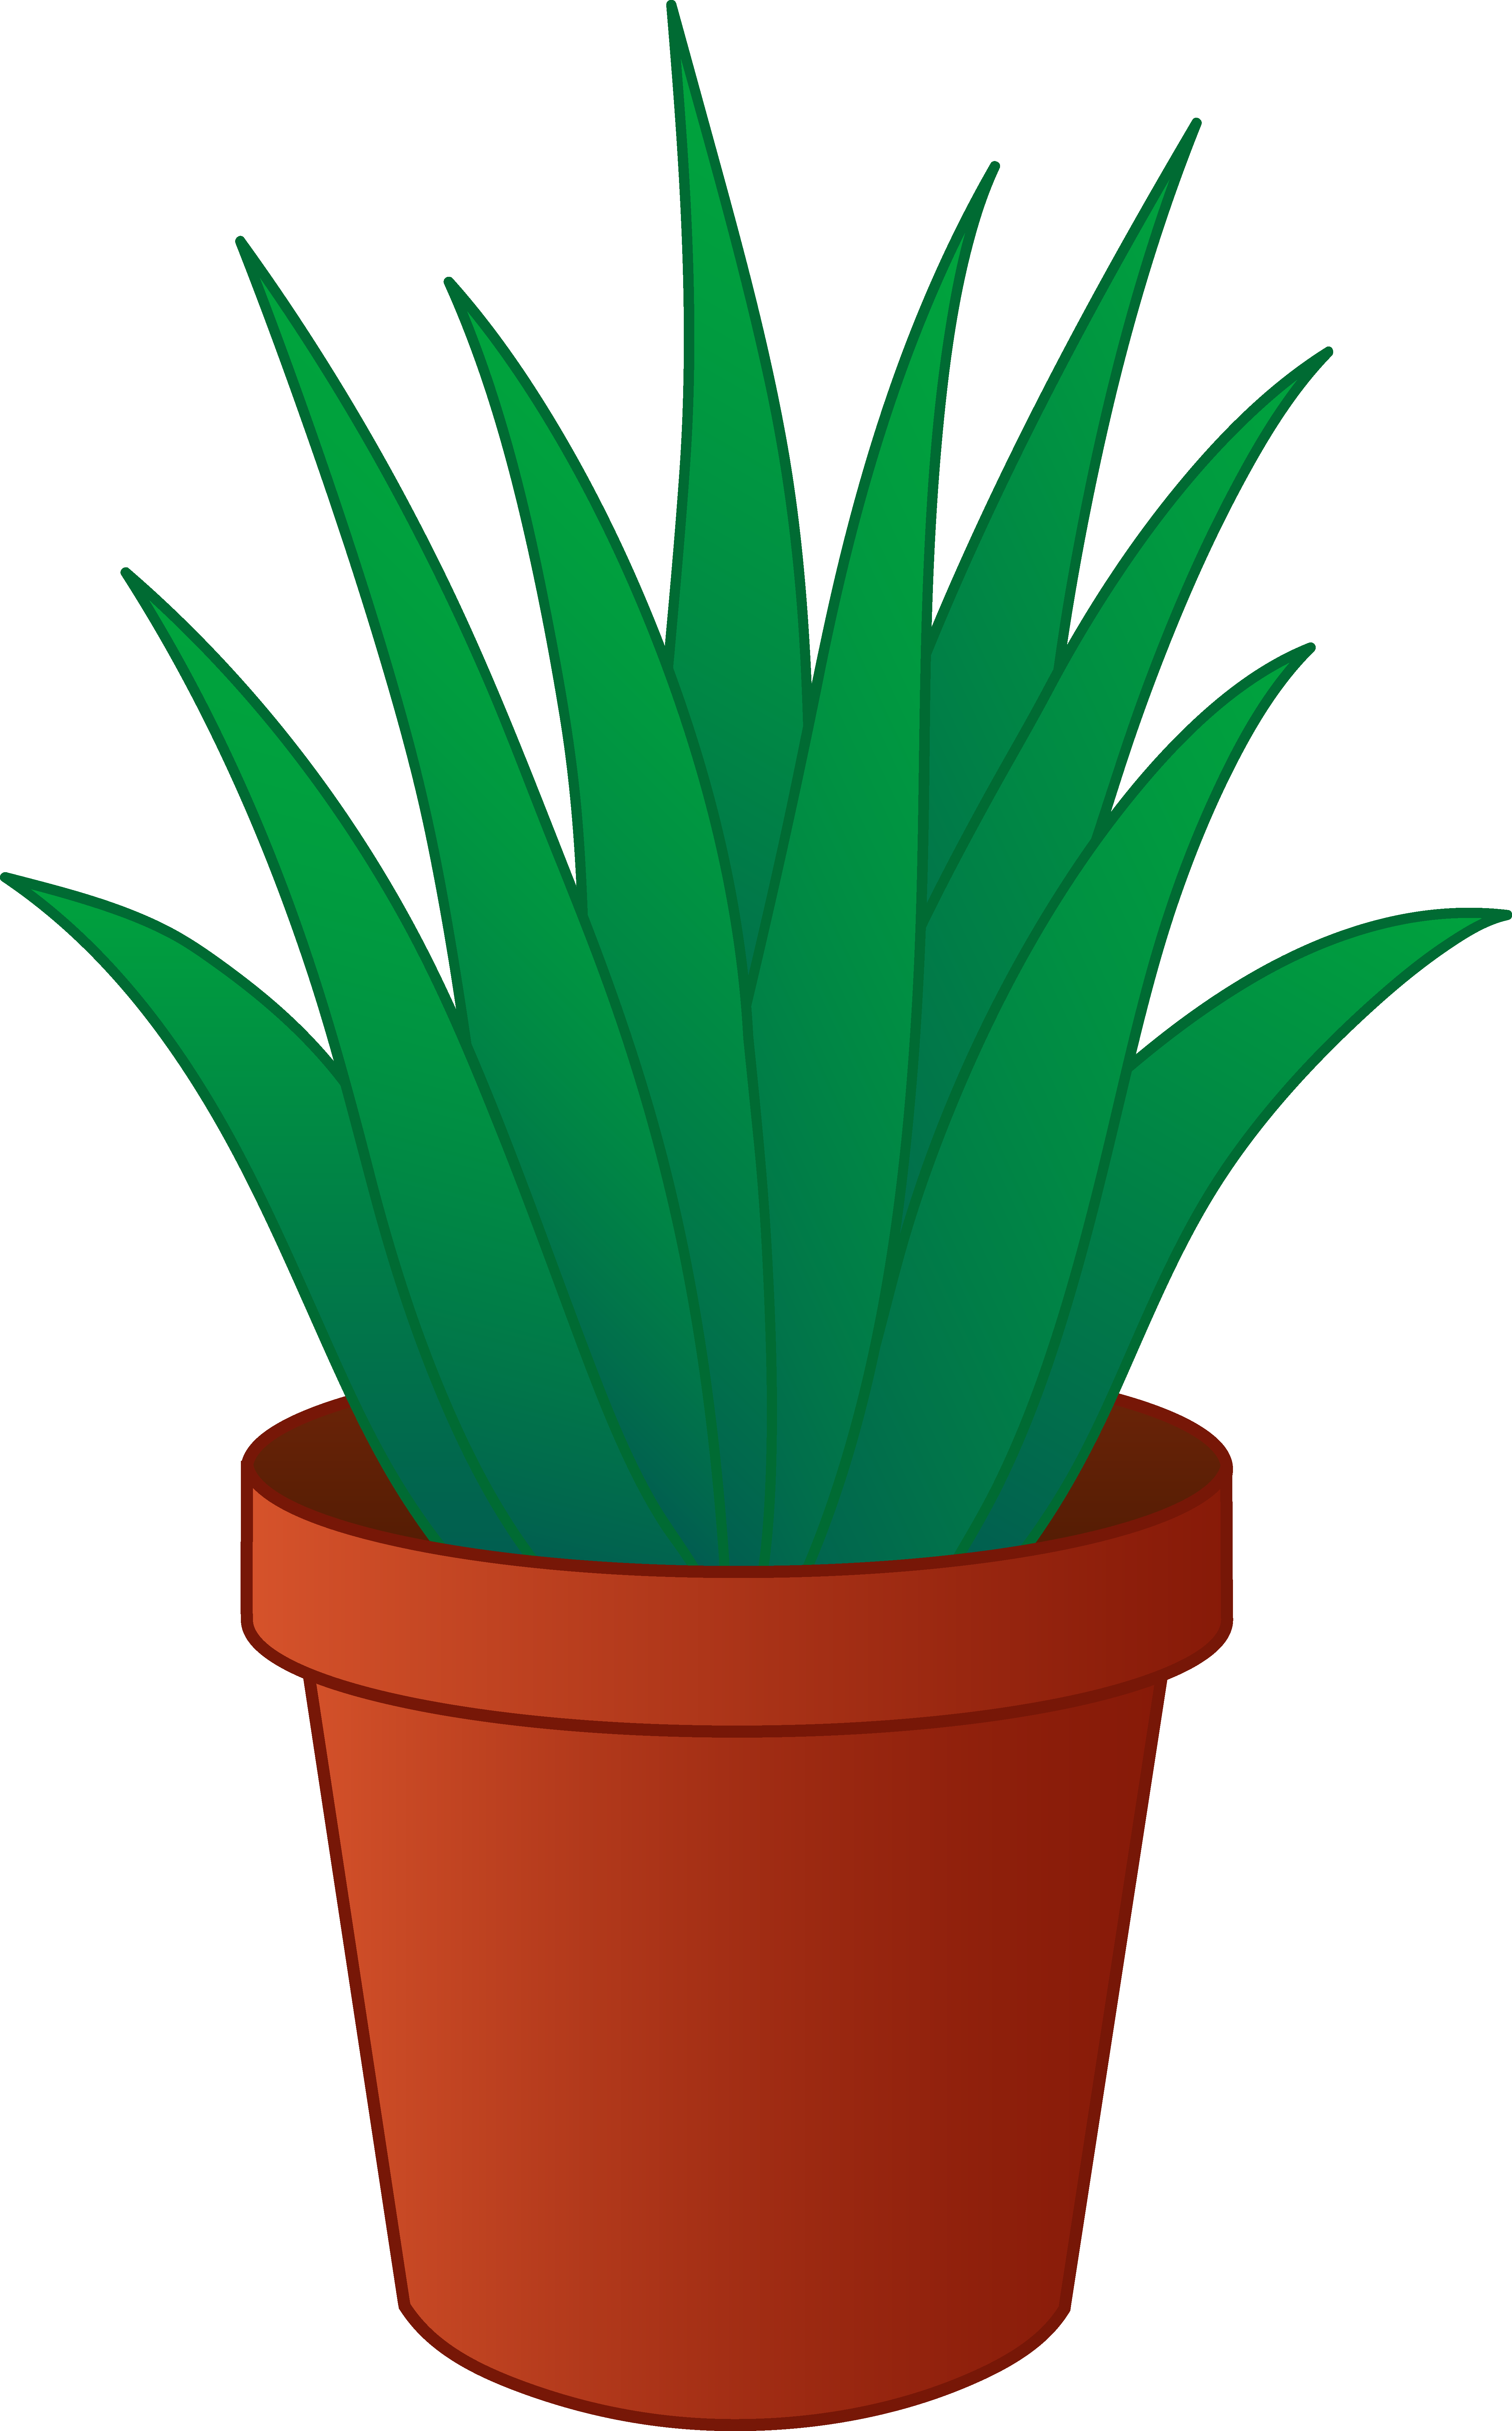 Pictures Of Potted Plants - Cliparts.co